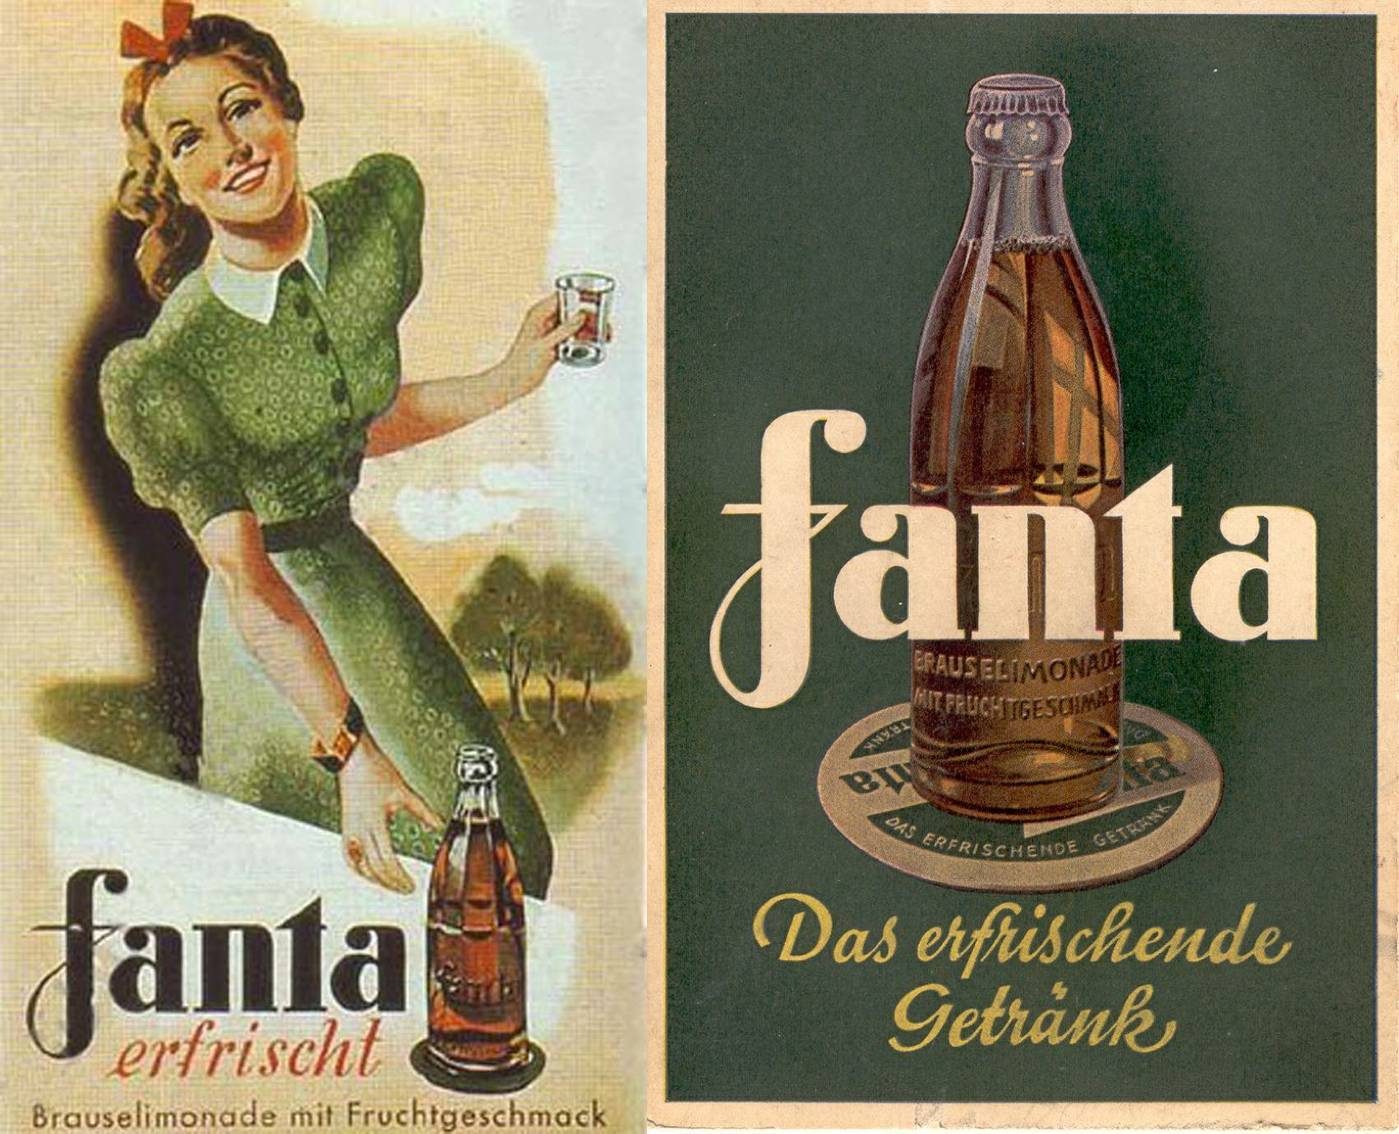 Fanta, the drink owned by Coca-Cola and invented in Nazi Germany.